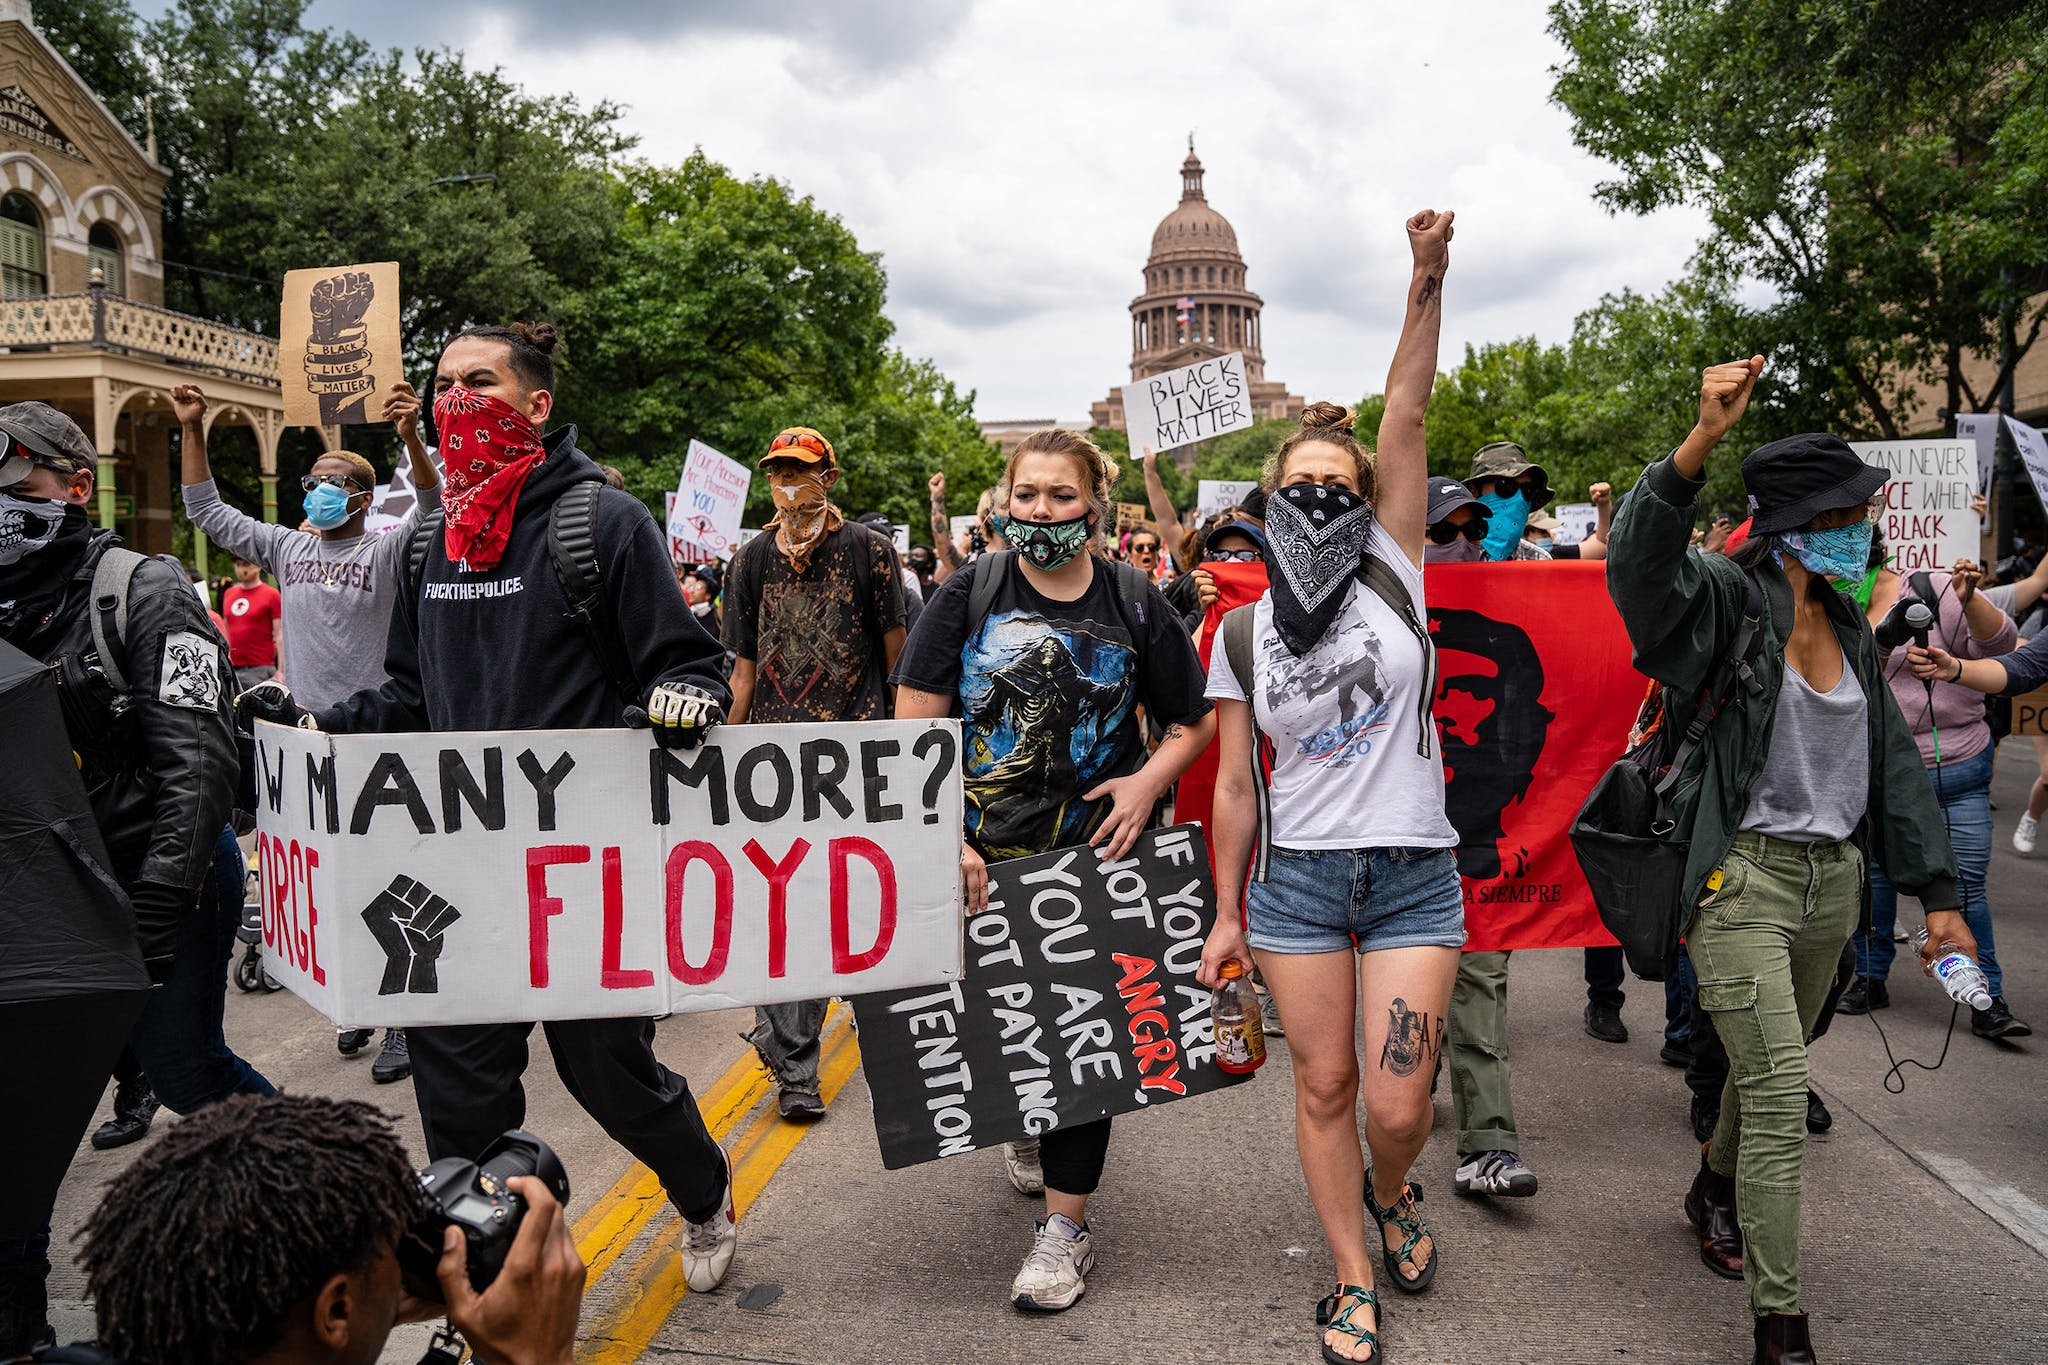 Protesters march on Congress Avenue in Austin on May 31, 2020, after the killing of George Floyd, an unarmed black man in Minnesota, sparks nationwide outrage.